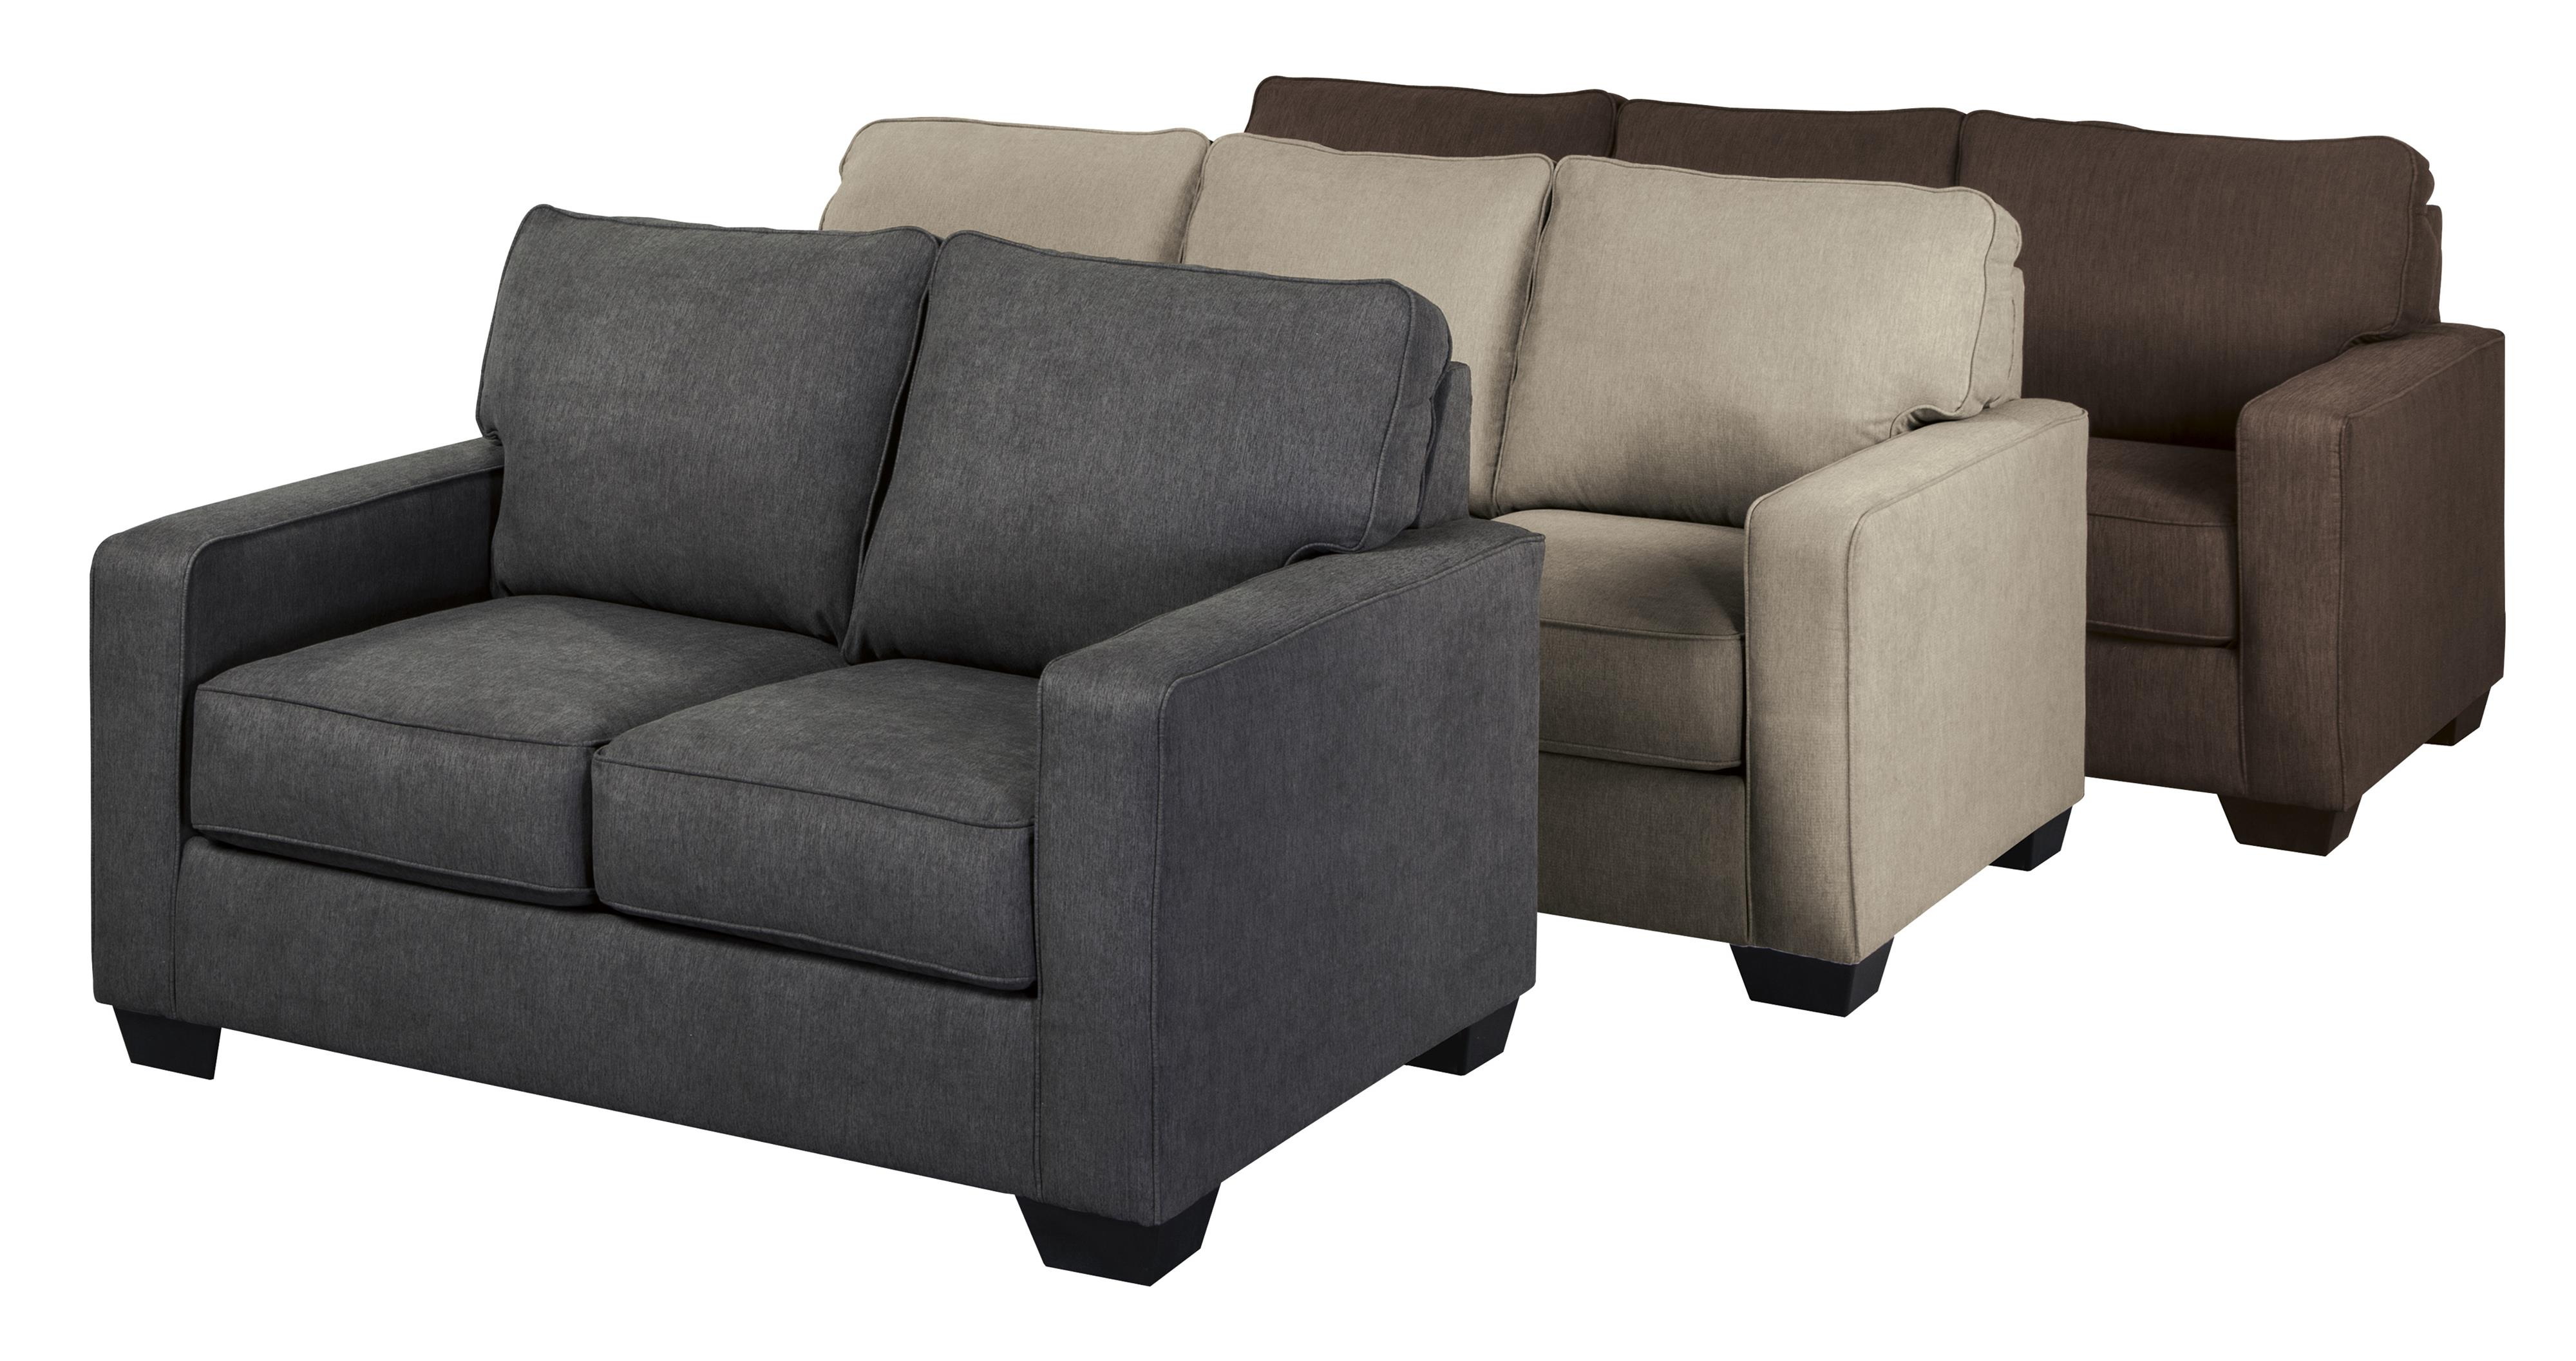 Tremendous Twin Sofa Sleeper With Memory Foam Mattress By Signature Dailytribune Chair Design For Home Dailytribuneorg